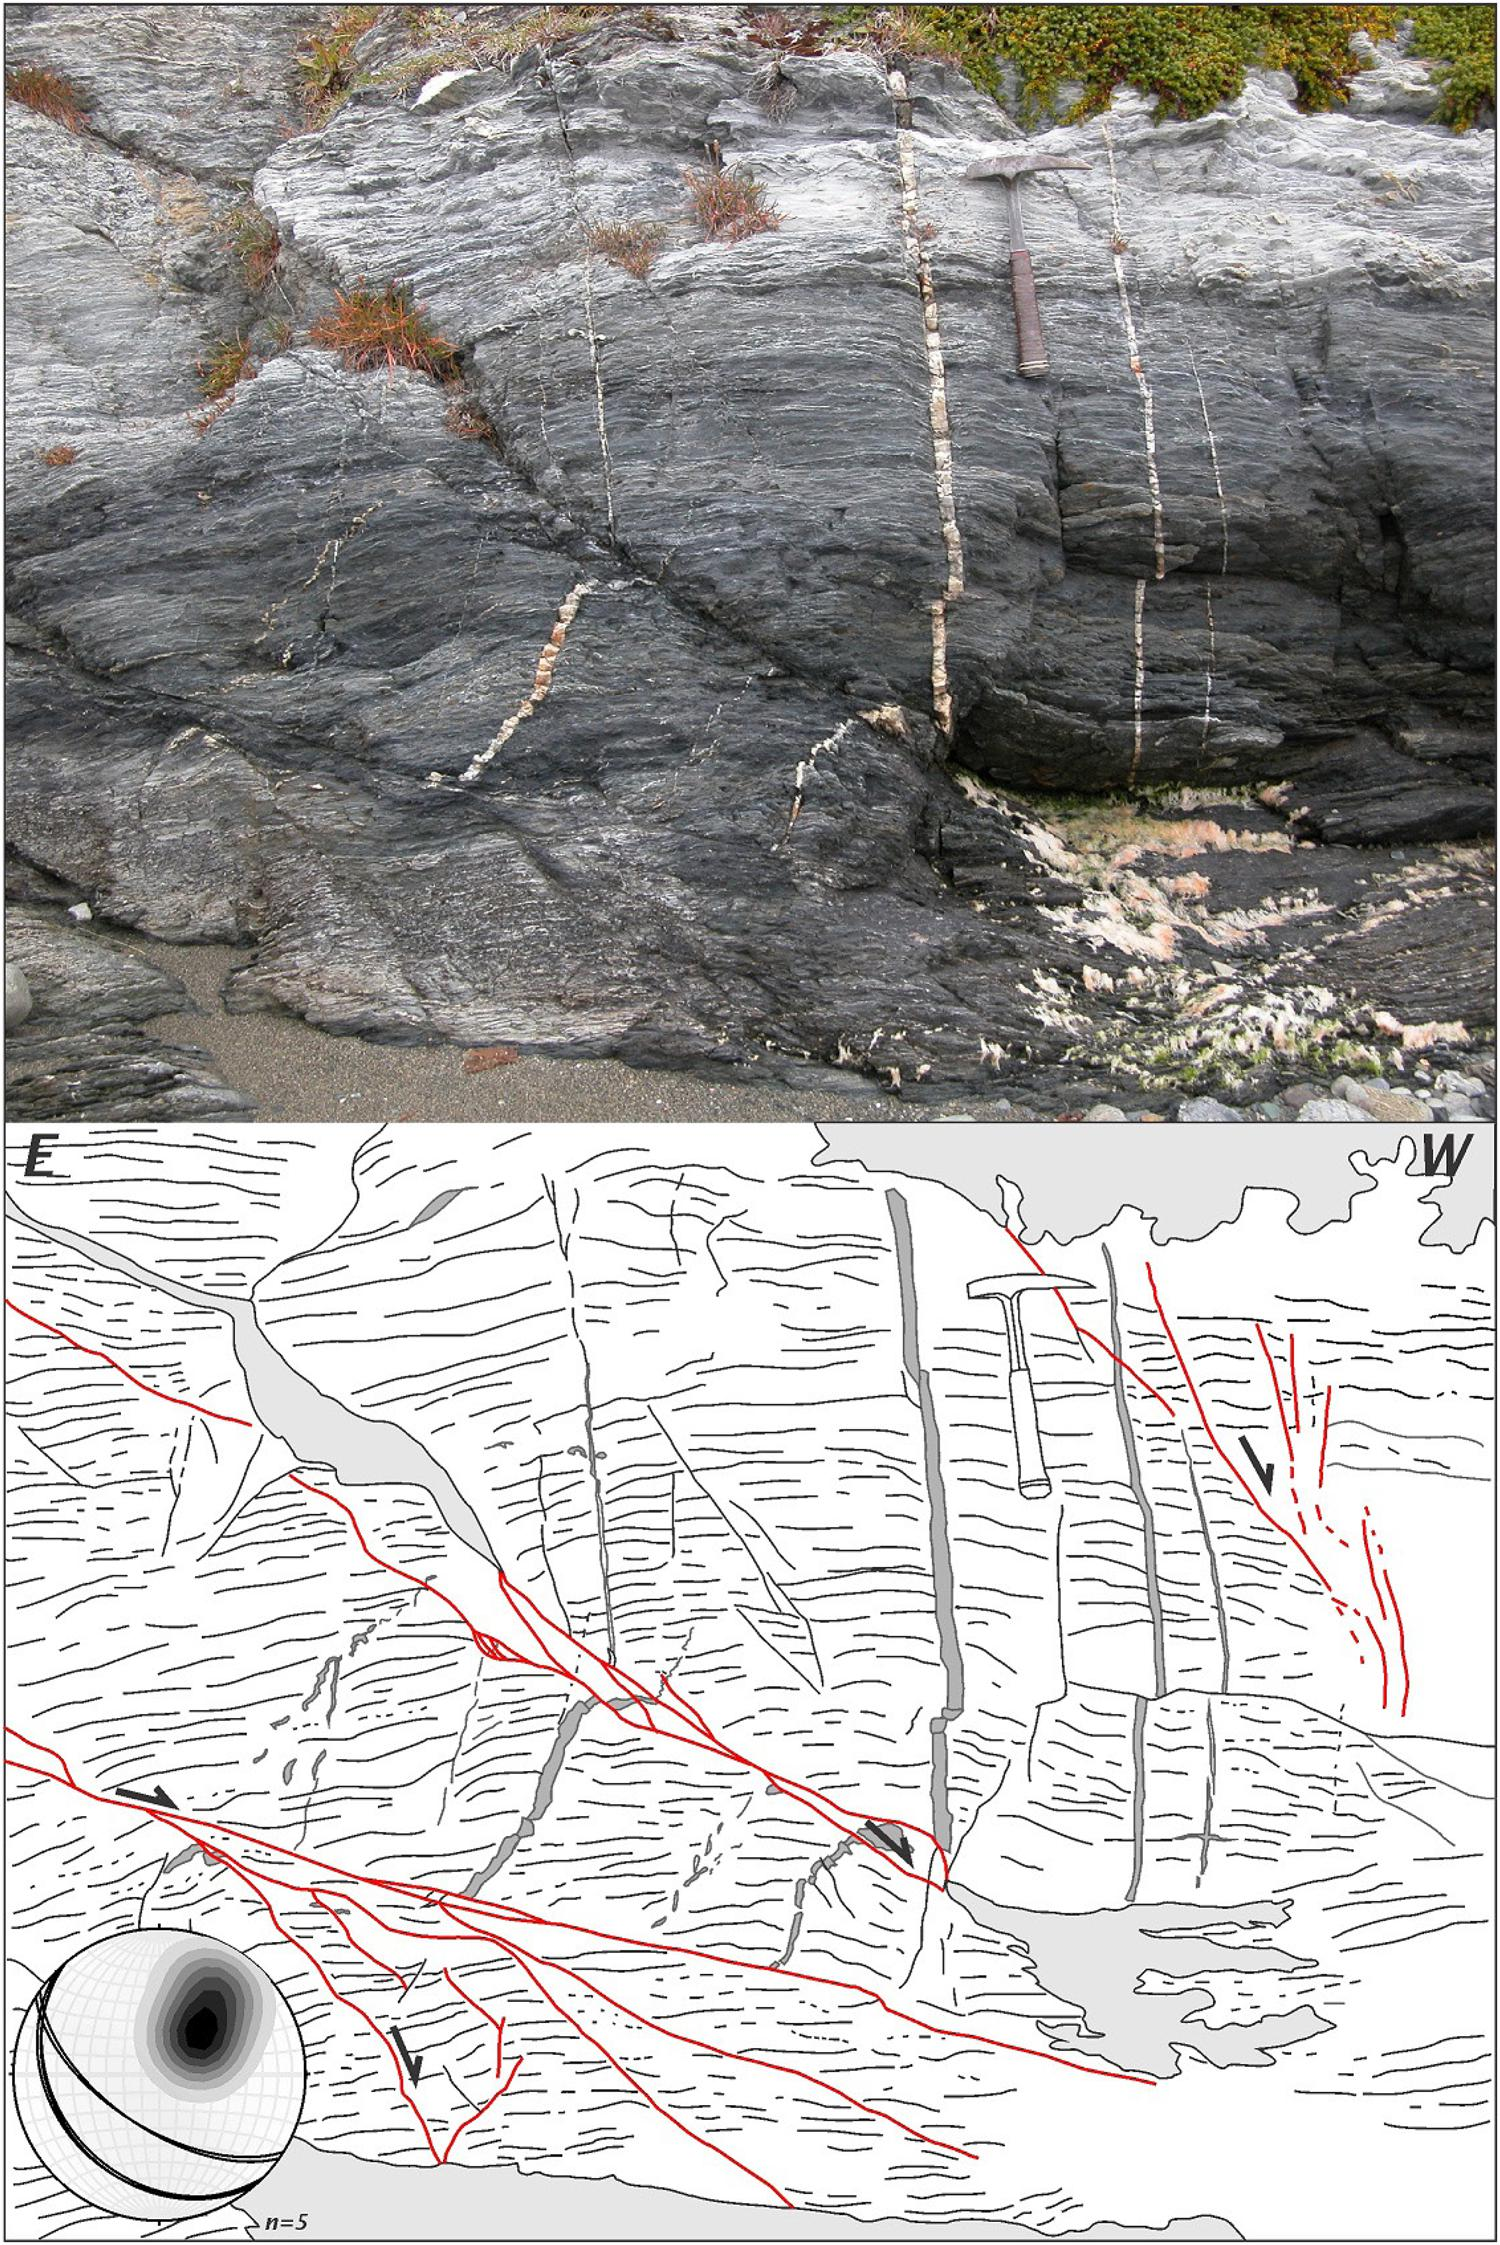 Arquitectura Somera De Lineamientos En Los Andes Fueguinos Basada Tree 325 Proximity Switch Wiring Diagram Fig 5 Phyllites Of Lapataia Formation Cross Cut By A Set Nw Se Striking Normal Faults Moderate Dips Towards The Sw Quartz Veins That